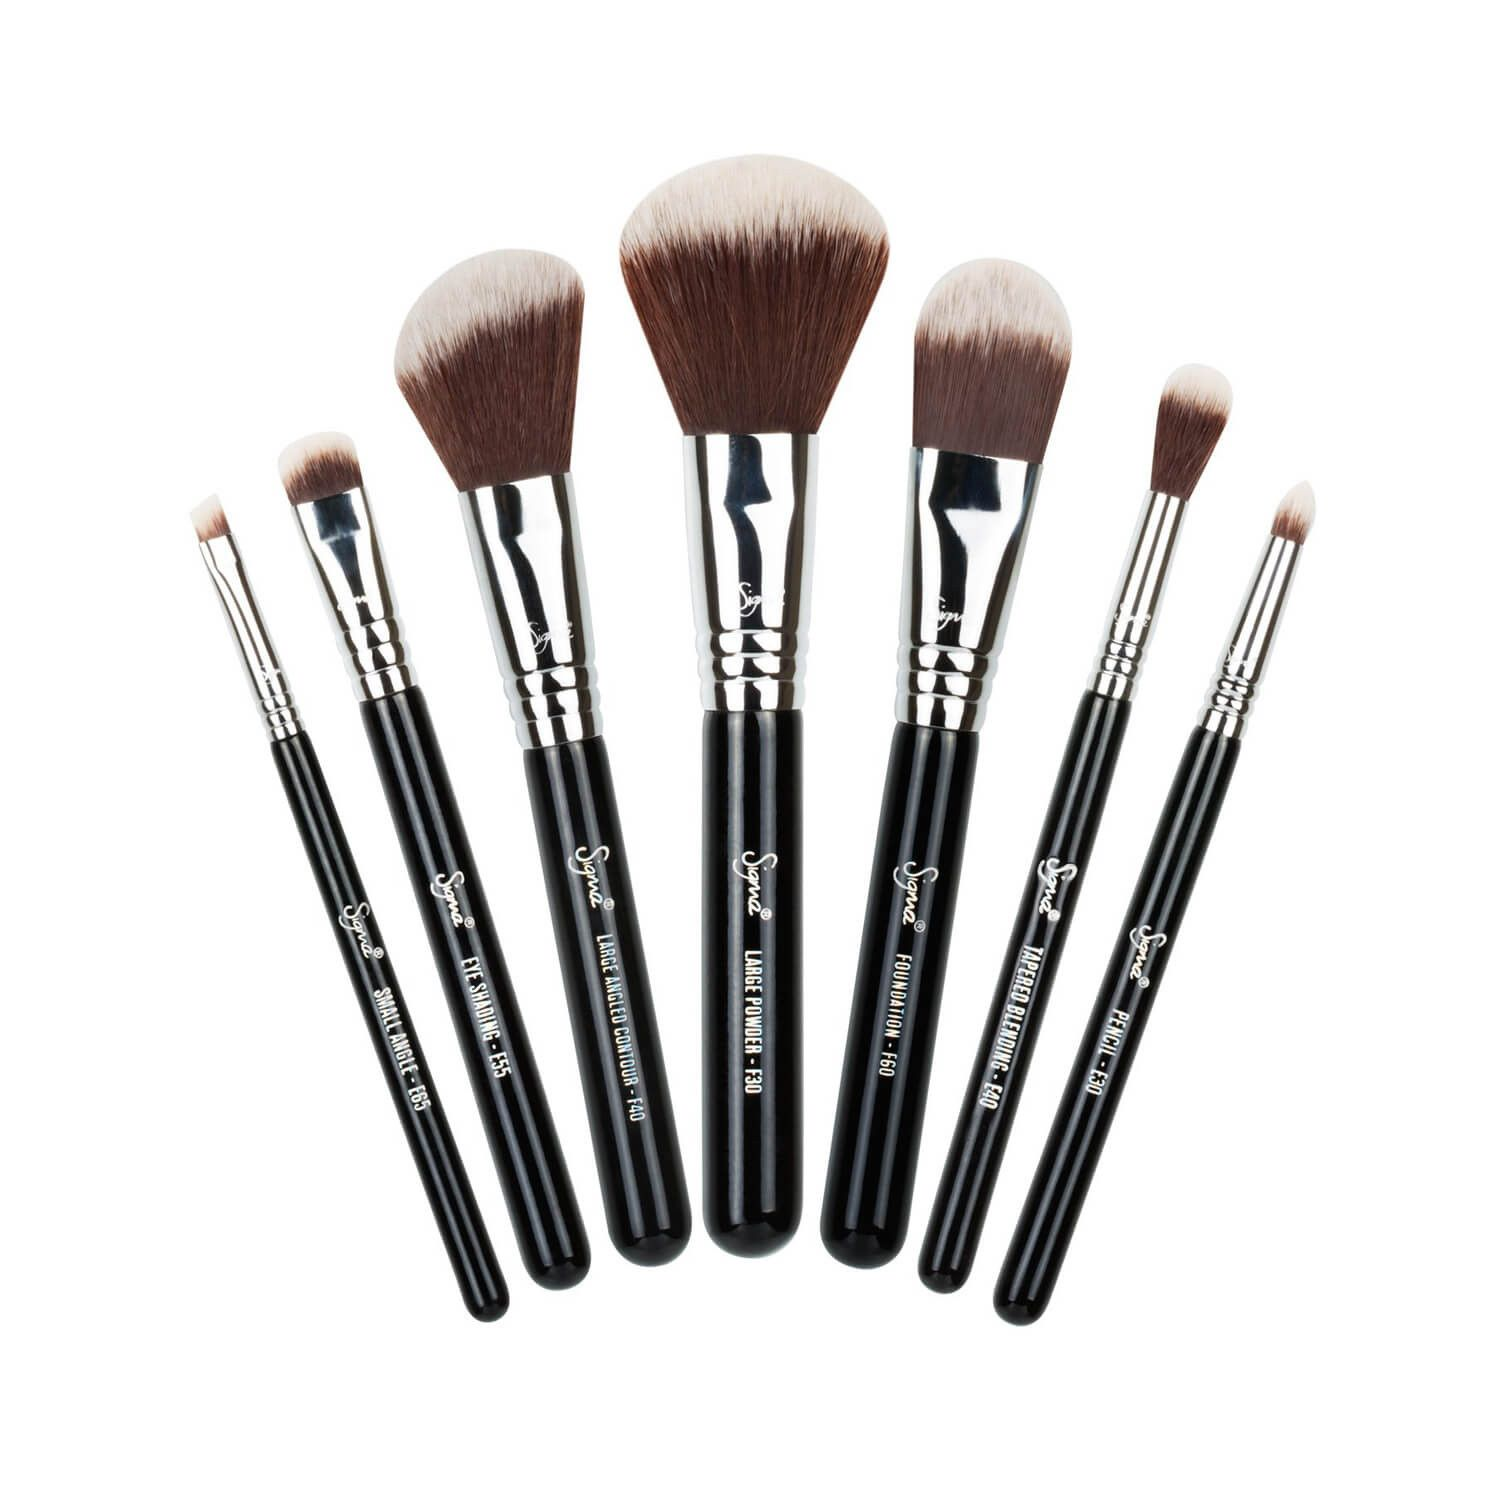 Travel Brush Kit Mr. Bunny (With images) Makeup brush